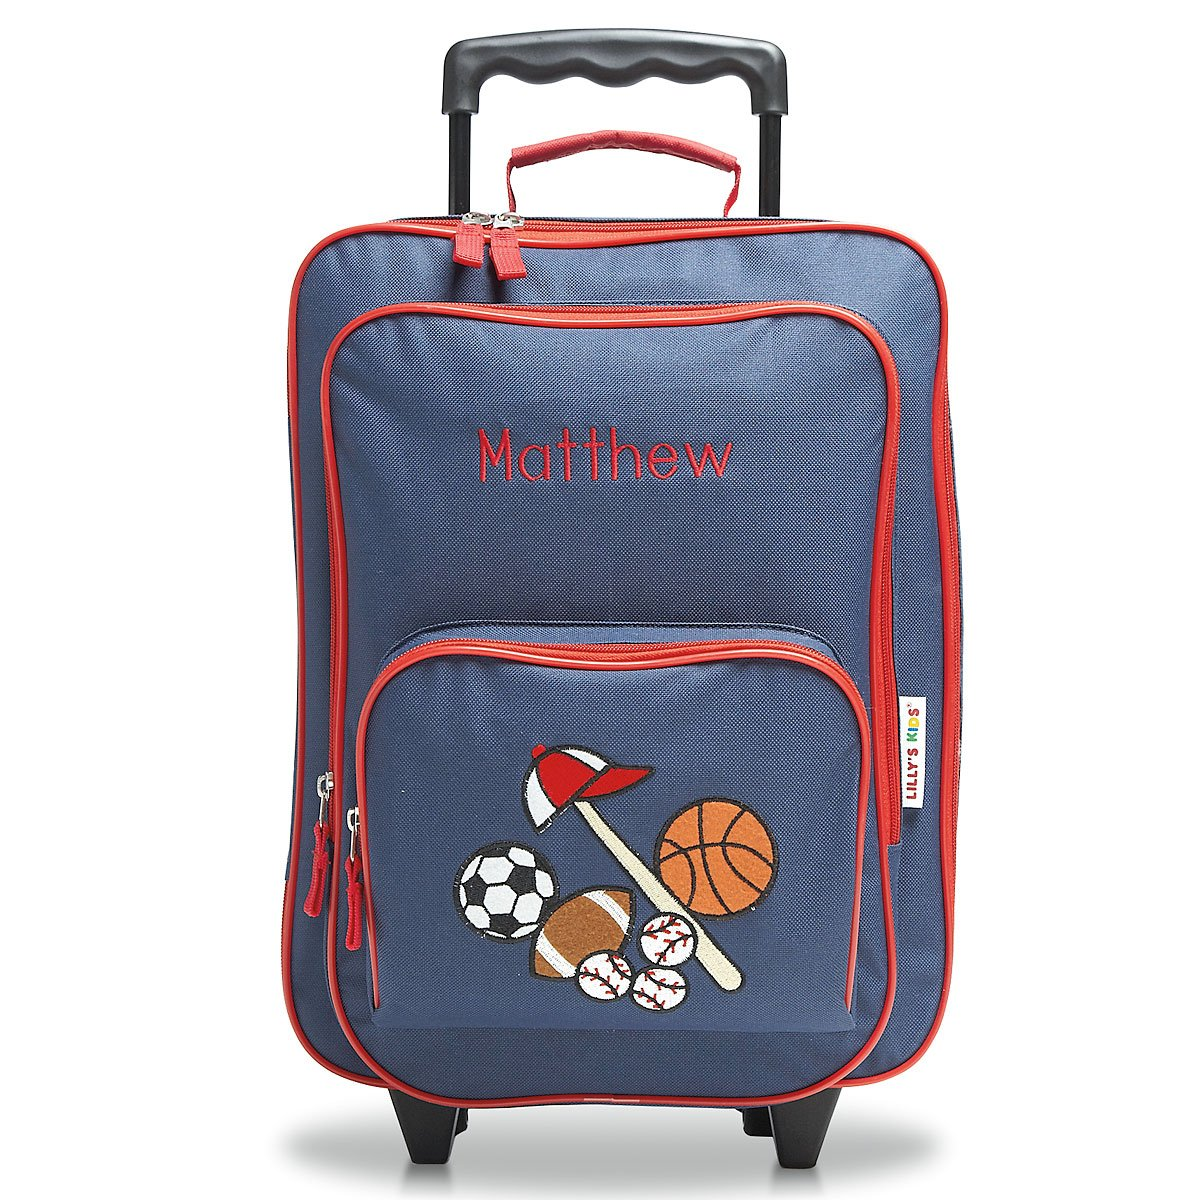 All Sports Personalized Kids Rolling Luggage - 5 x 12 x 16.75H, Kids Travel Bag 812050